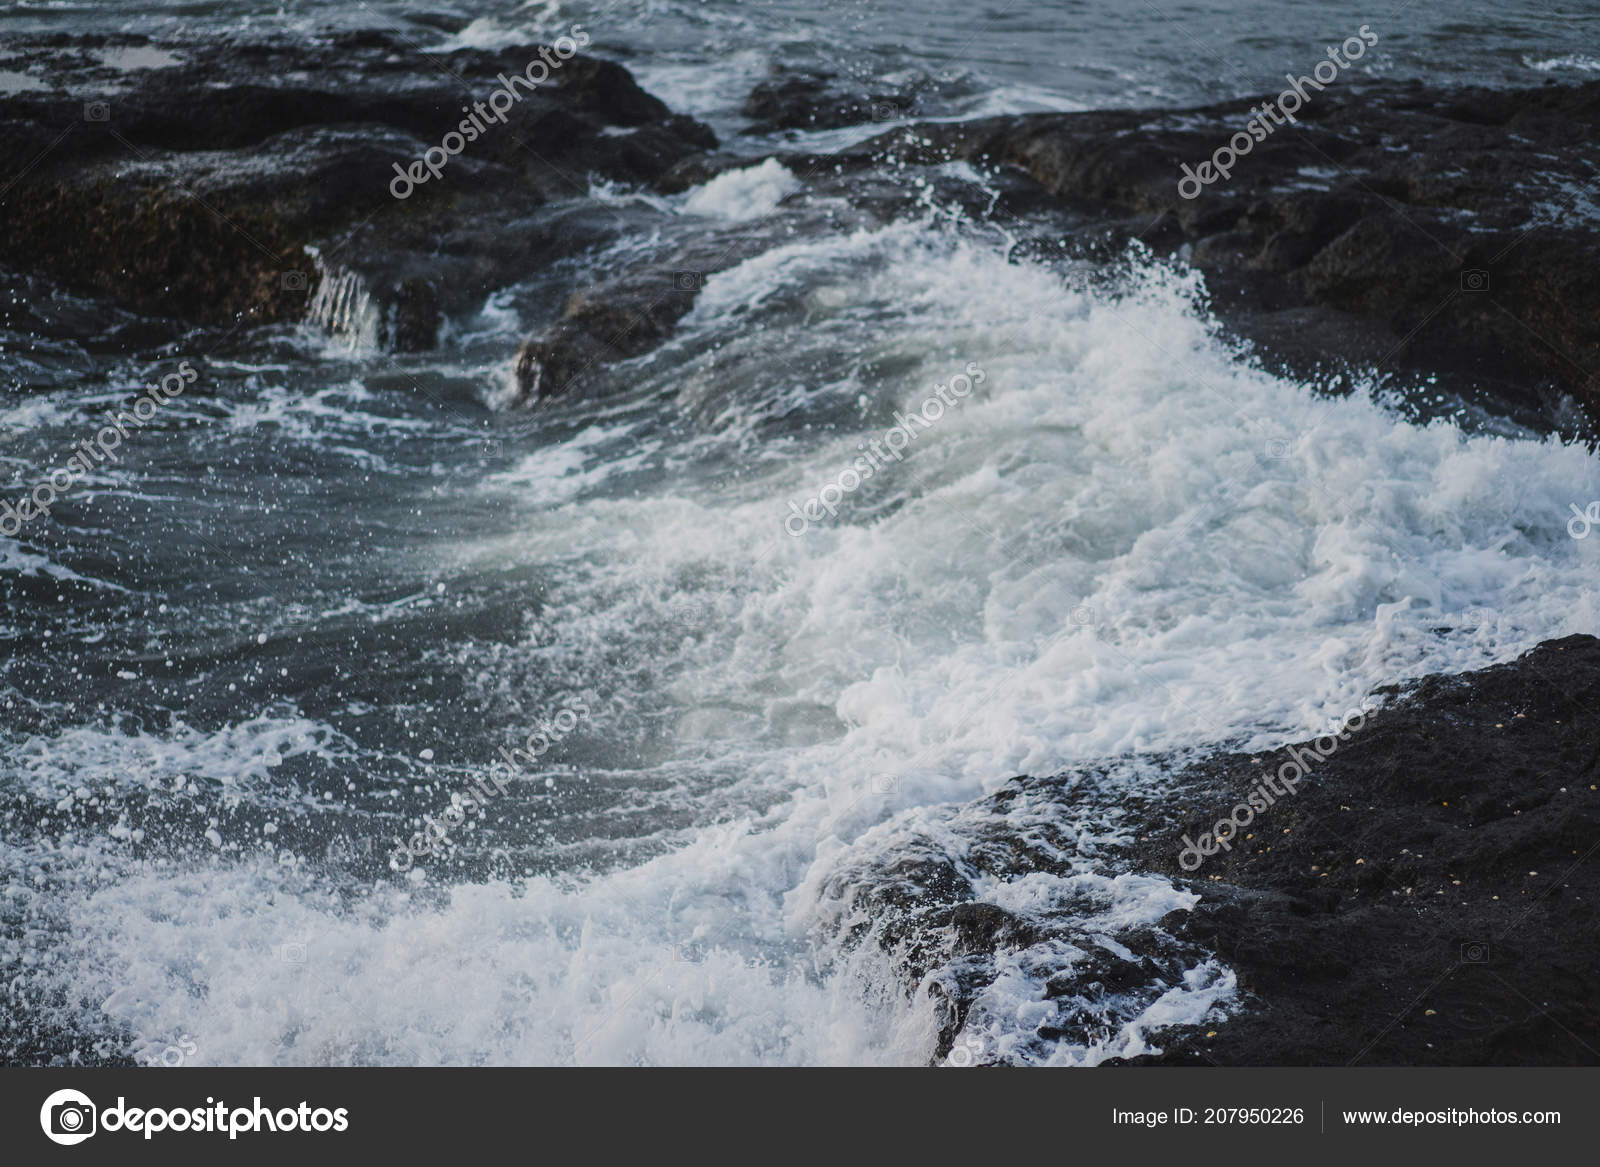 an analysis of a day in splashing the ocean waves One day, all your worries will set like the sun does and deserved happiness will come gushing like waves at the beach do  you will hear that waves of the ocean.